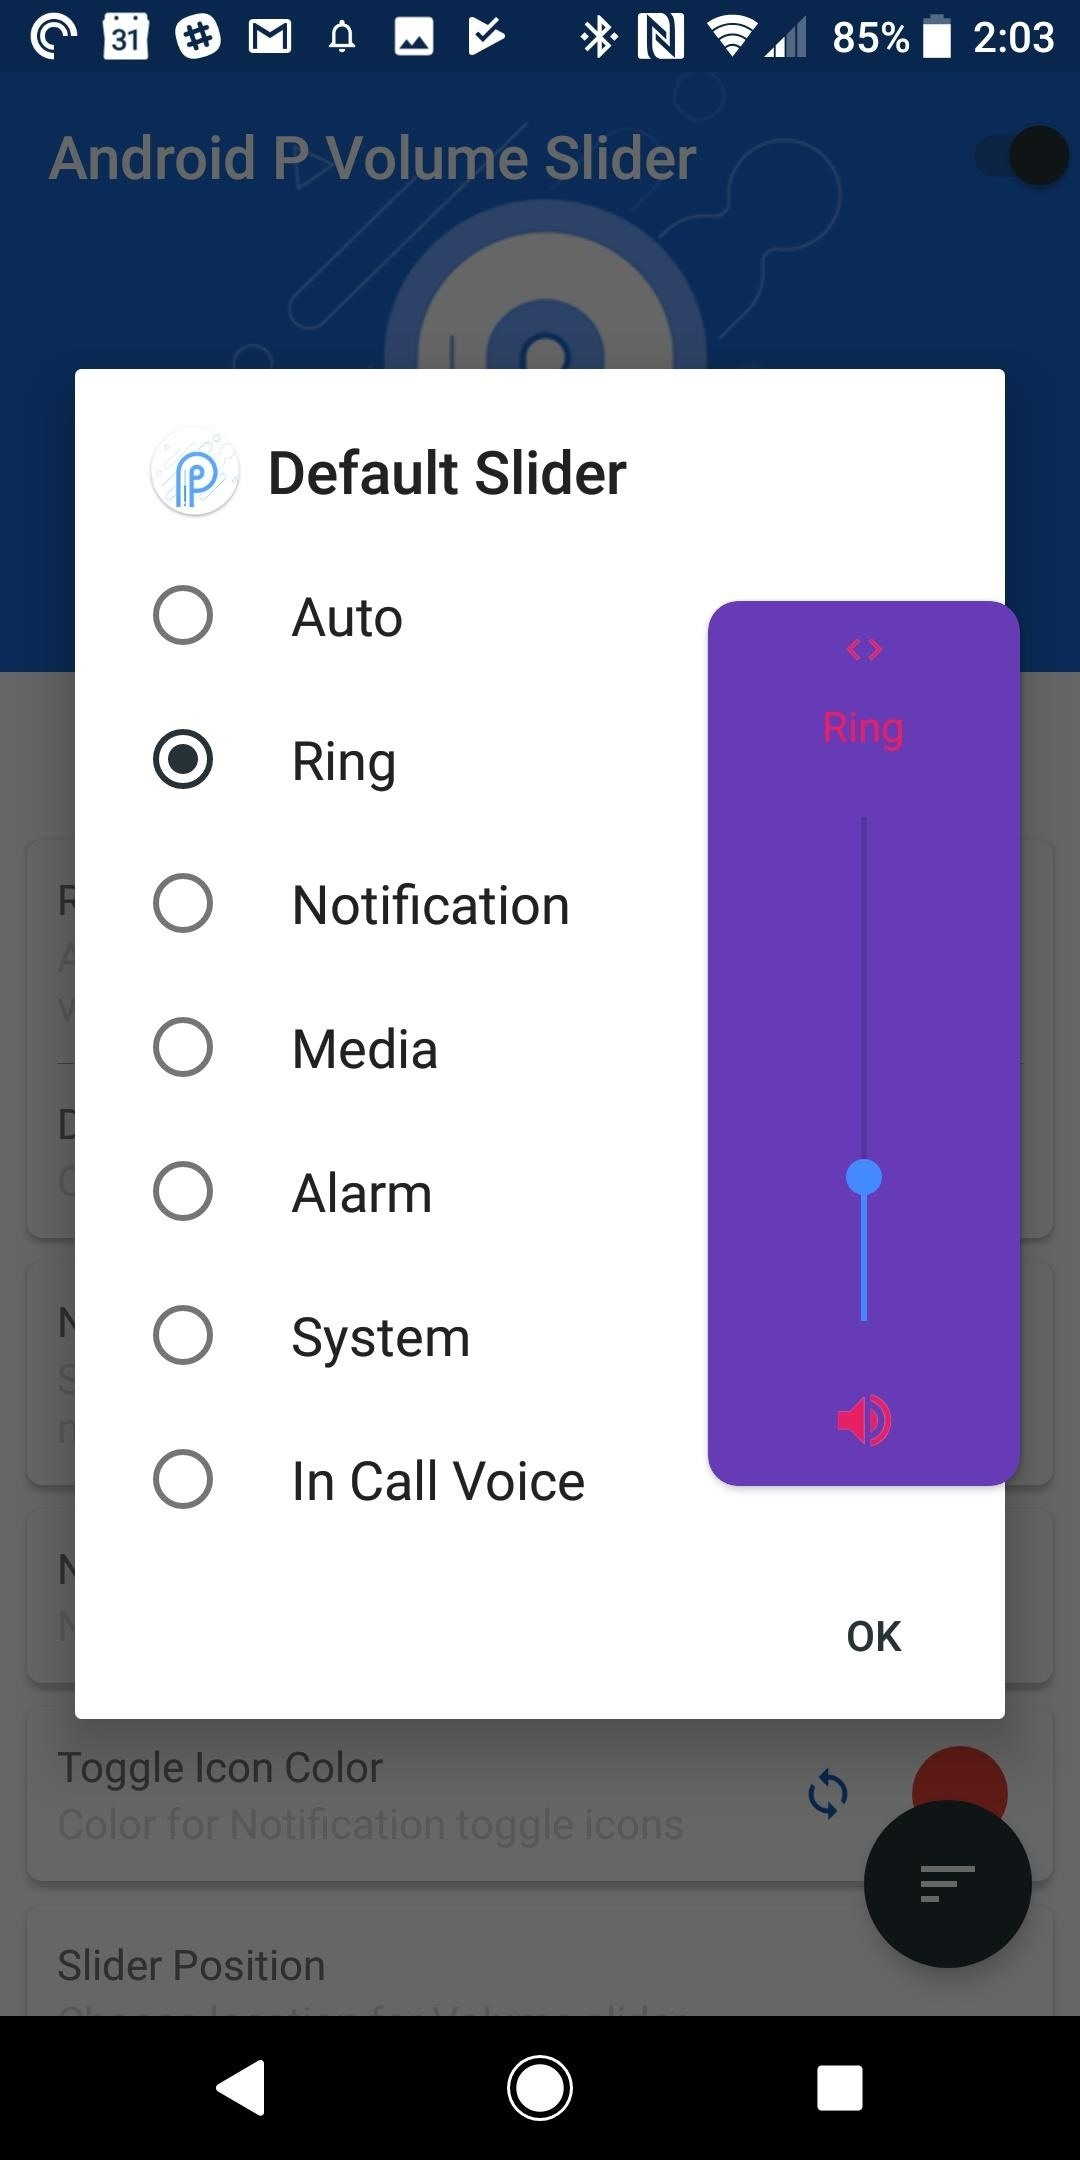 Get Android P's Volume Slider on Any Phone & Control Media Volume by Default  - get android ps volume slider any phone control media volume by default - Get Android P's Volume Slider on Any Phone & Control Media Volume by Default « Android :: Gadget Hacks